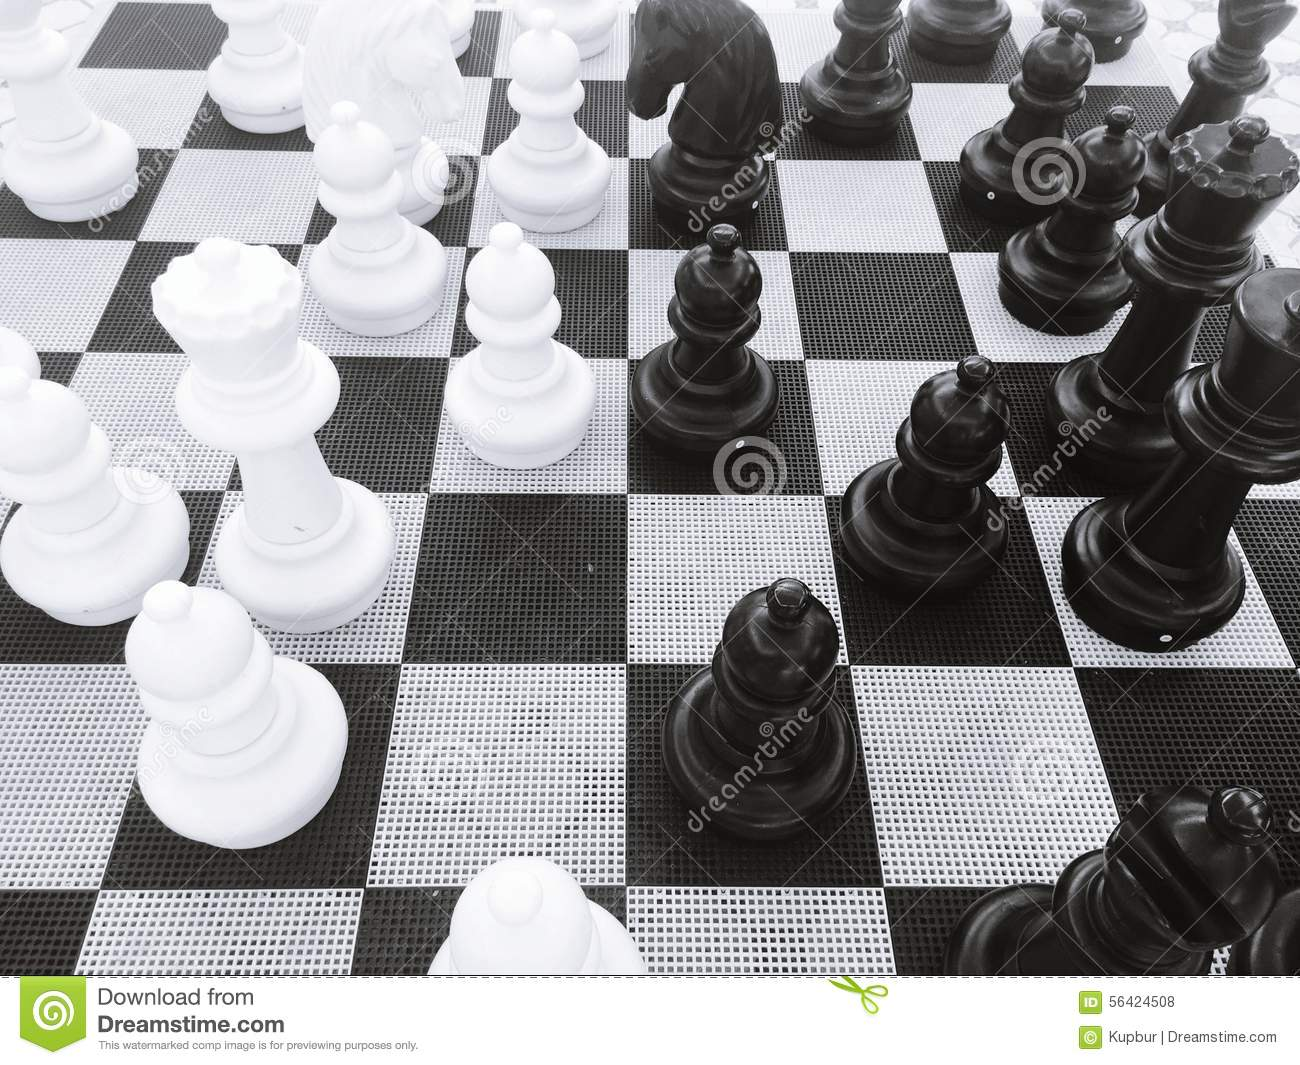 how to develop a strategy in chess